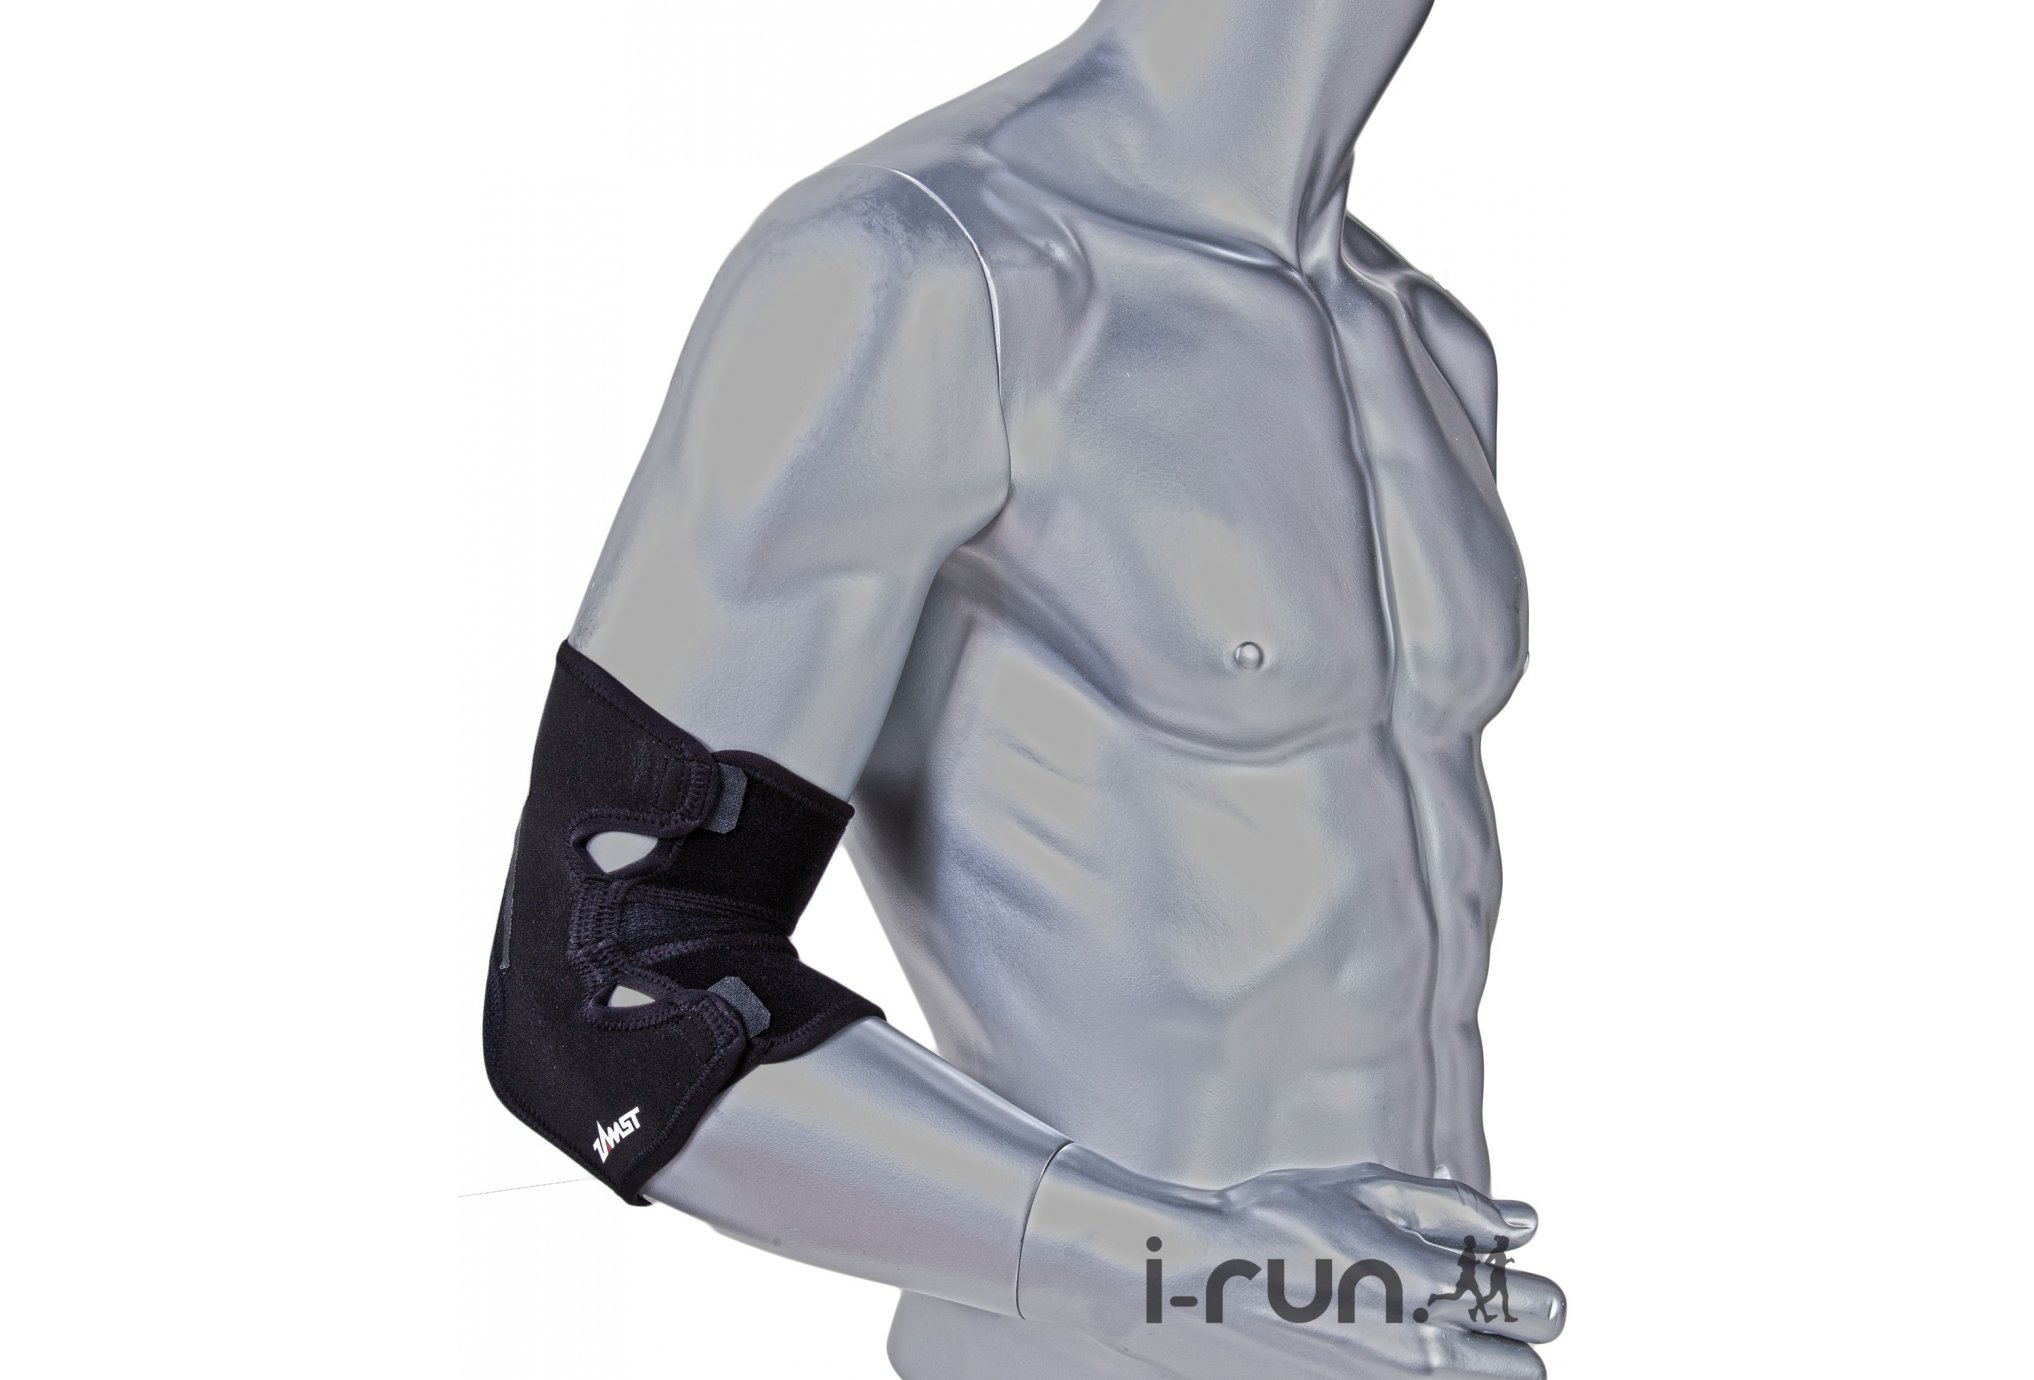 Zamst Protection Coude Protection musculaire & articulaire